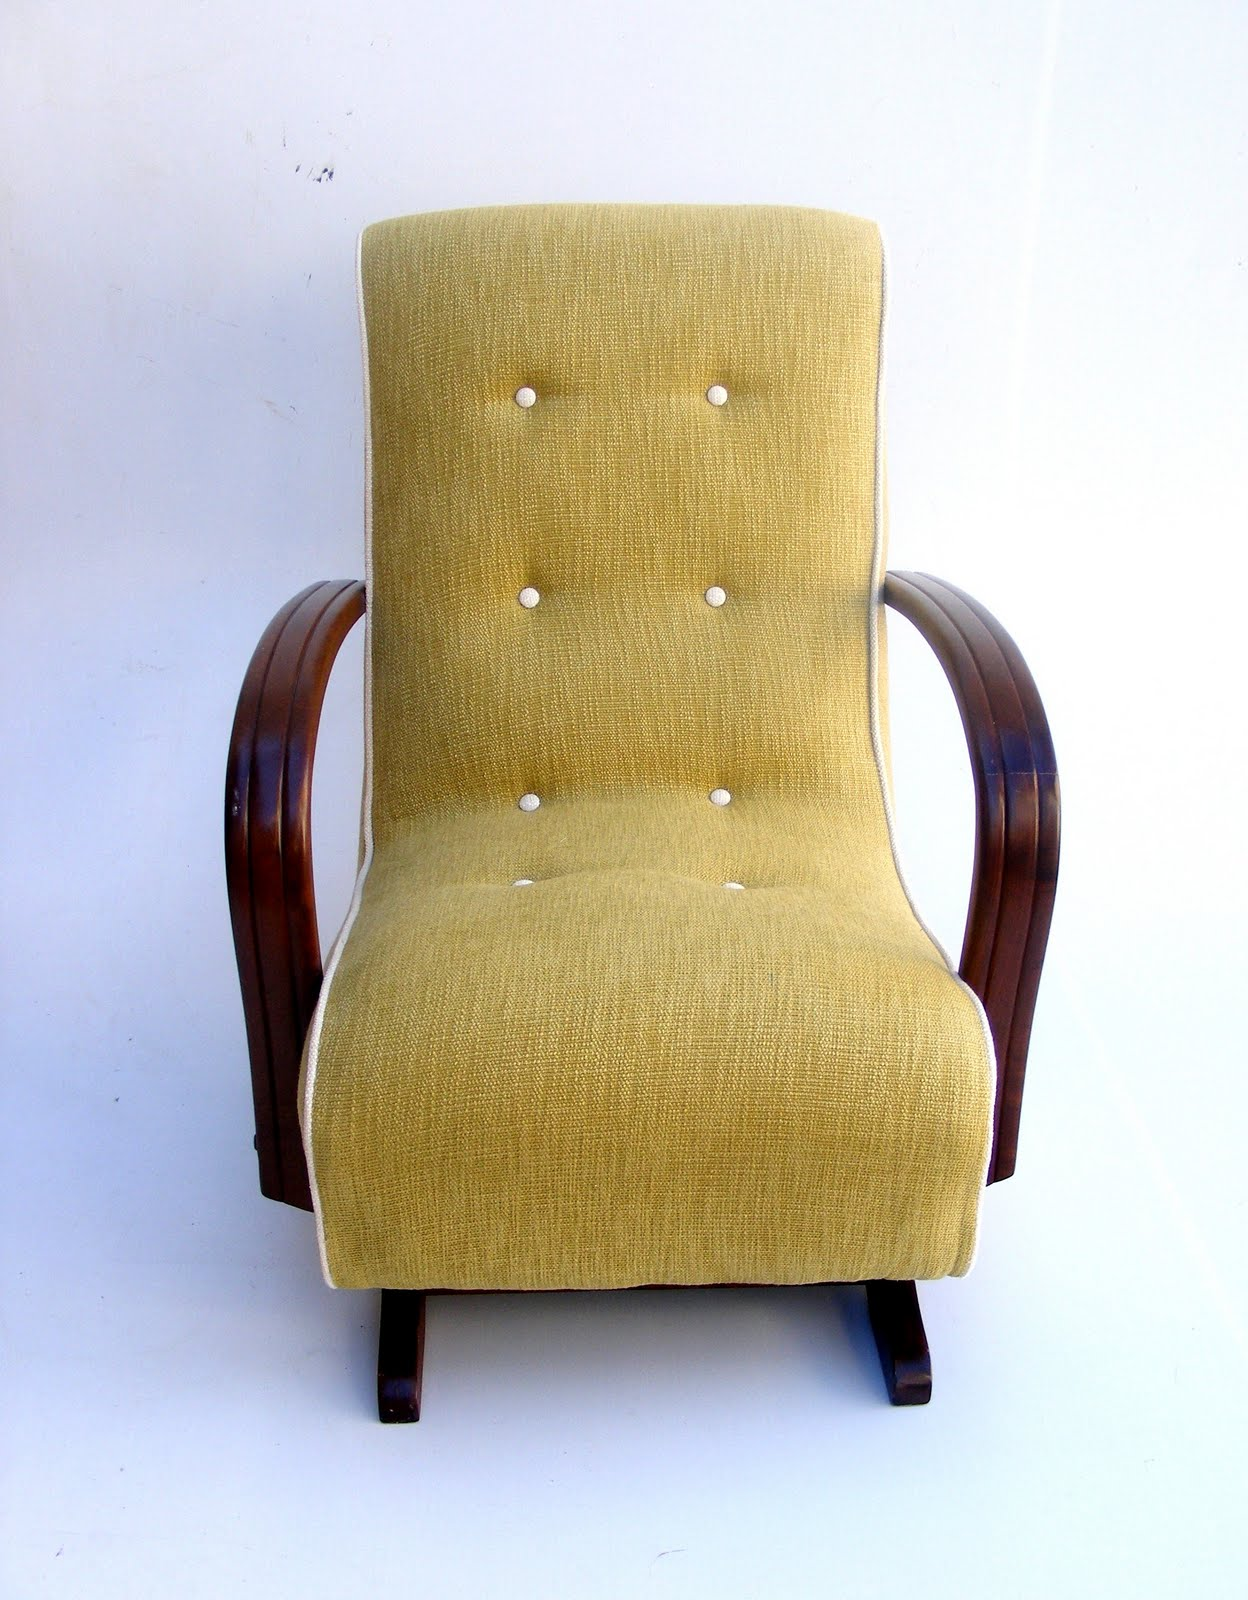 Banana Rocker Chair 302 Found